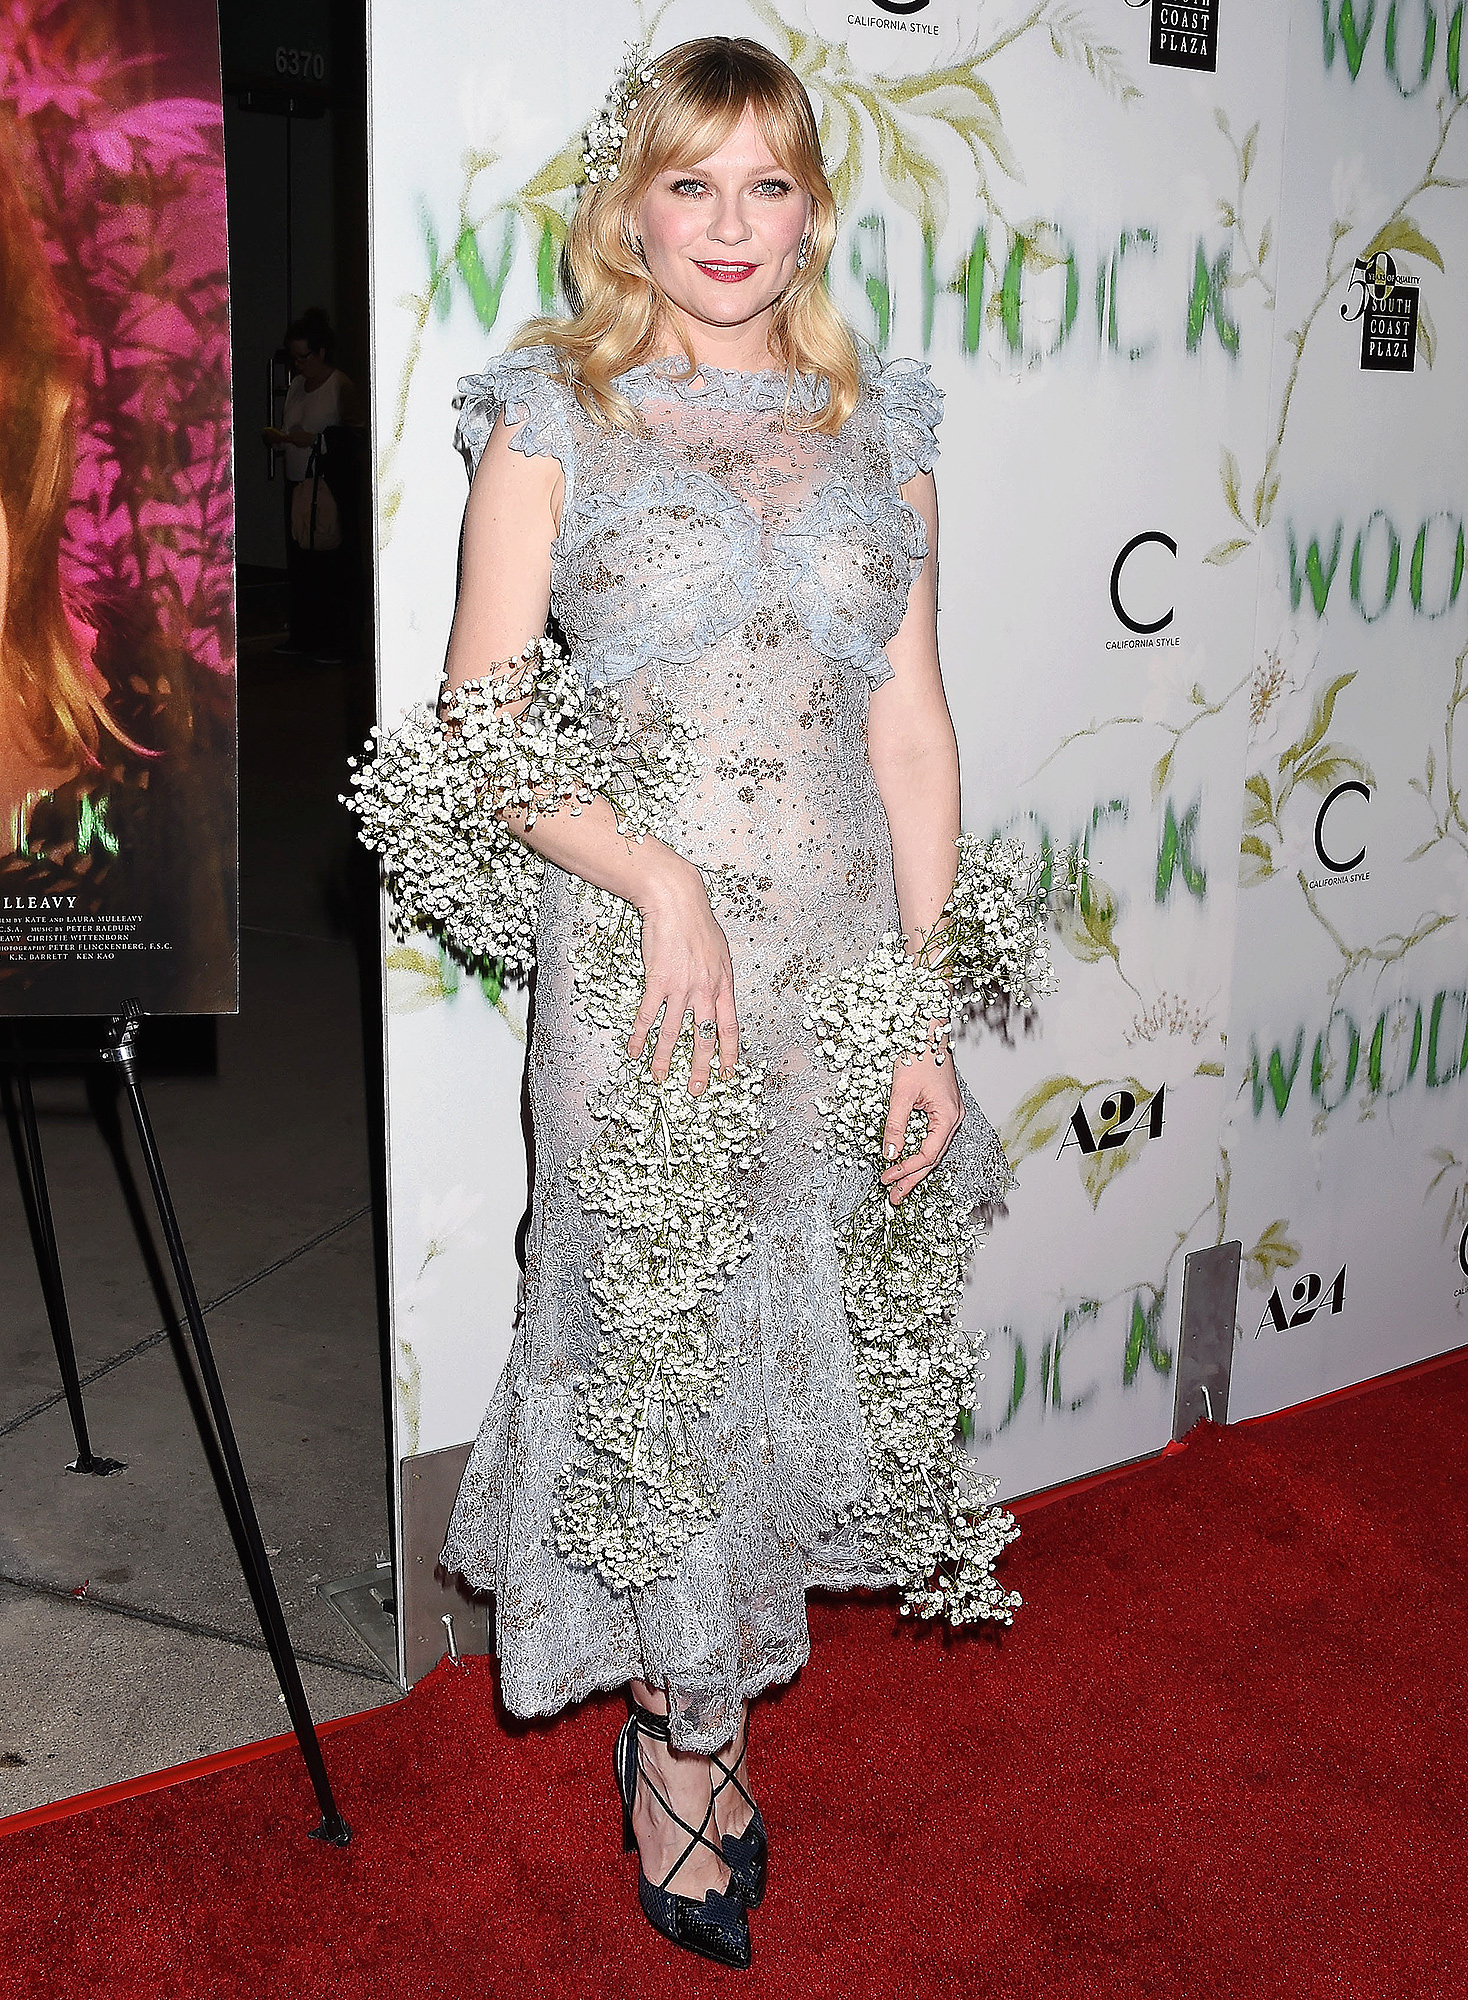 Premiere Of A24's 'Woodshock' - Arrivals